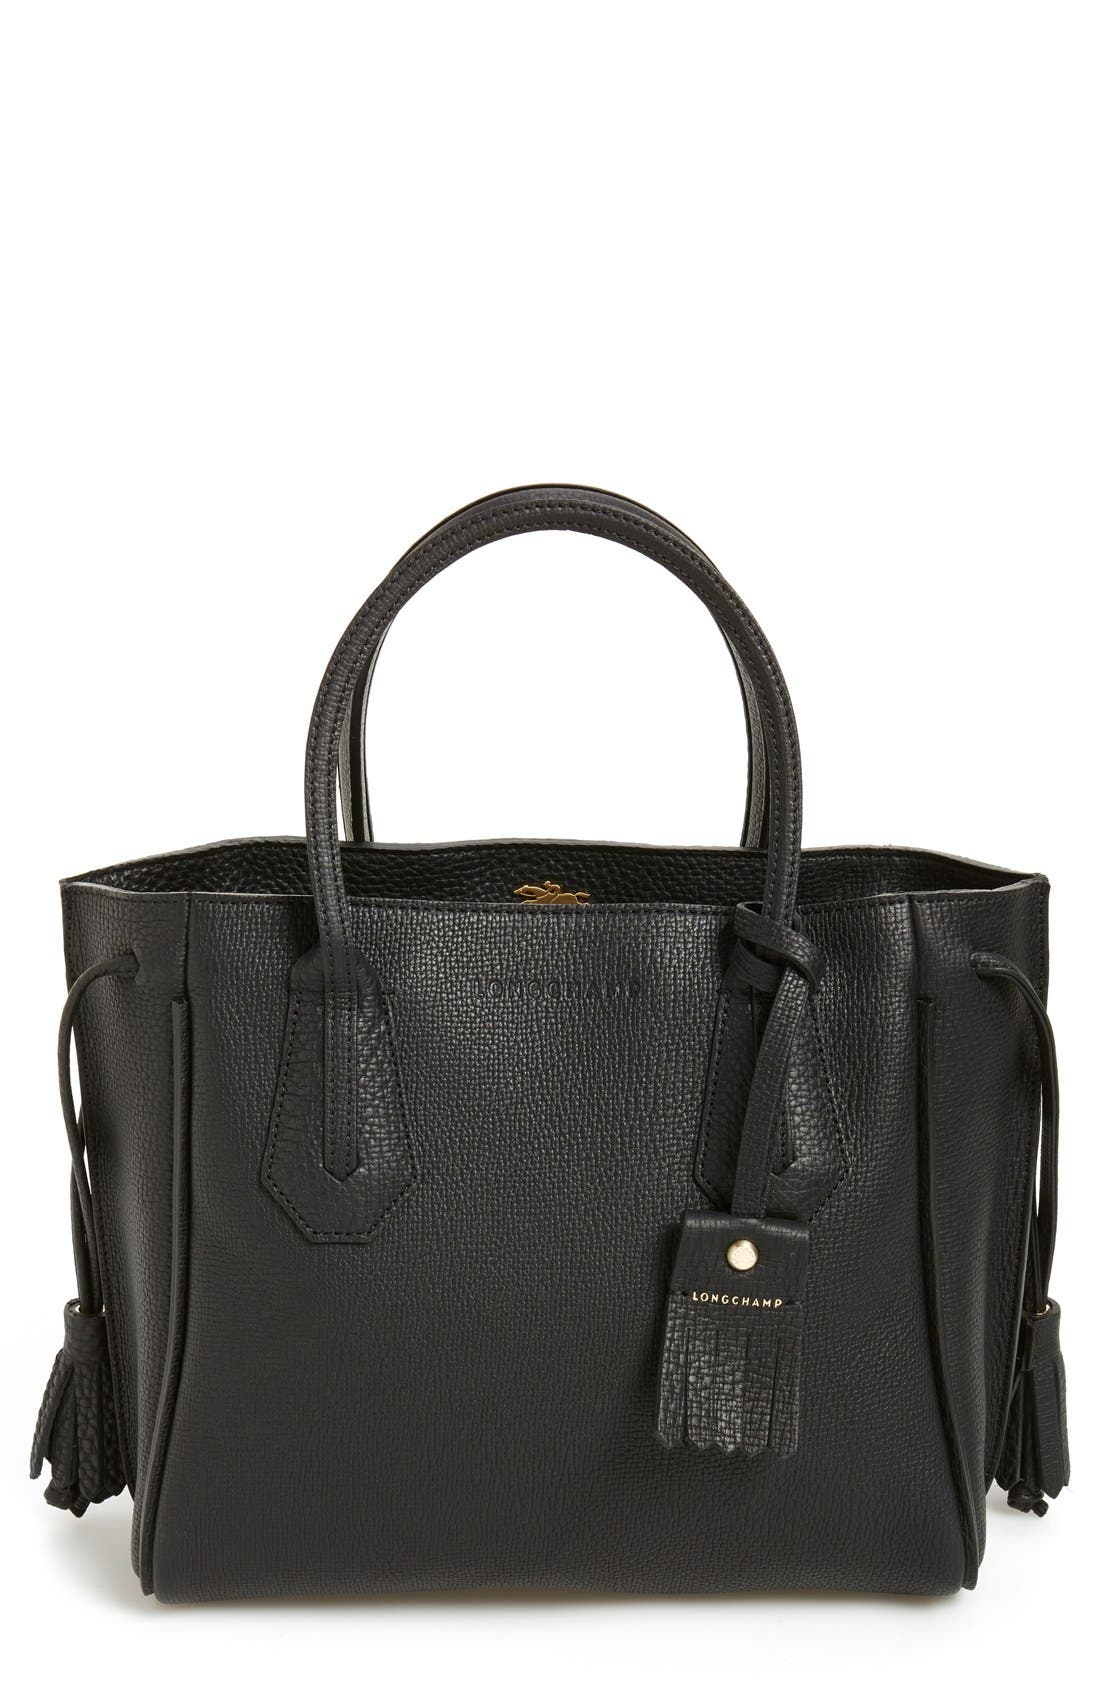 LONGCHAMP 'Small Penelope' Leather Tote, Main, color, 001